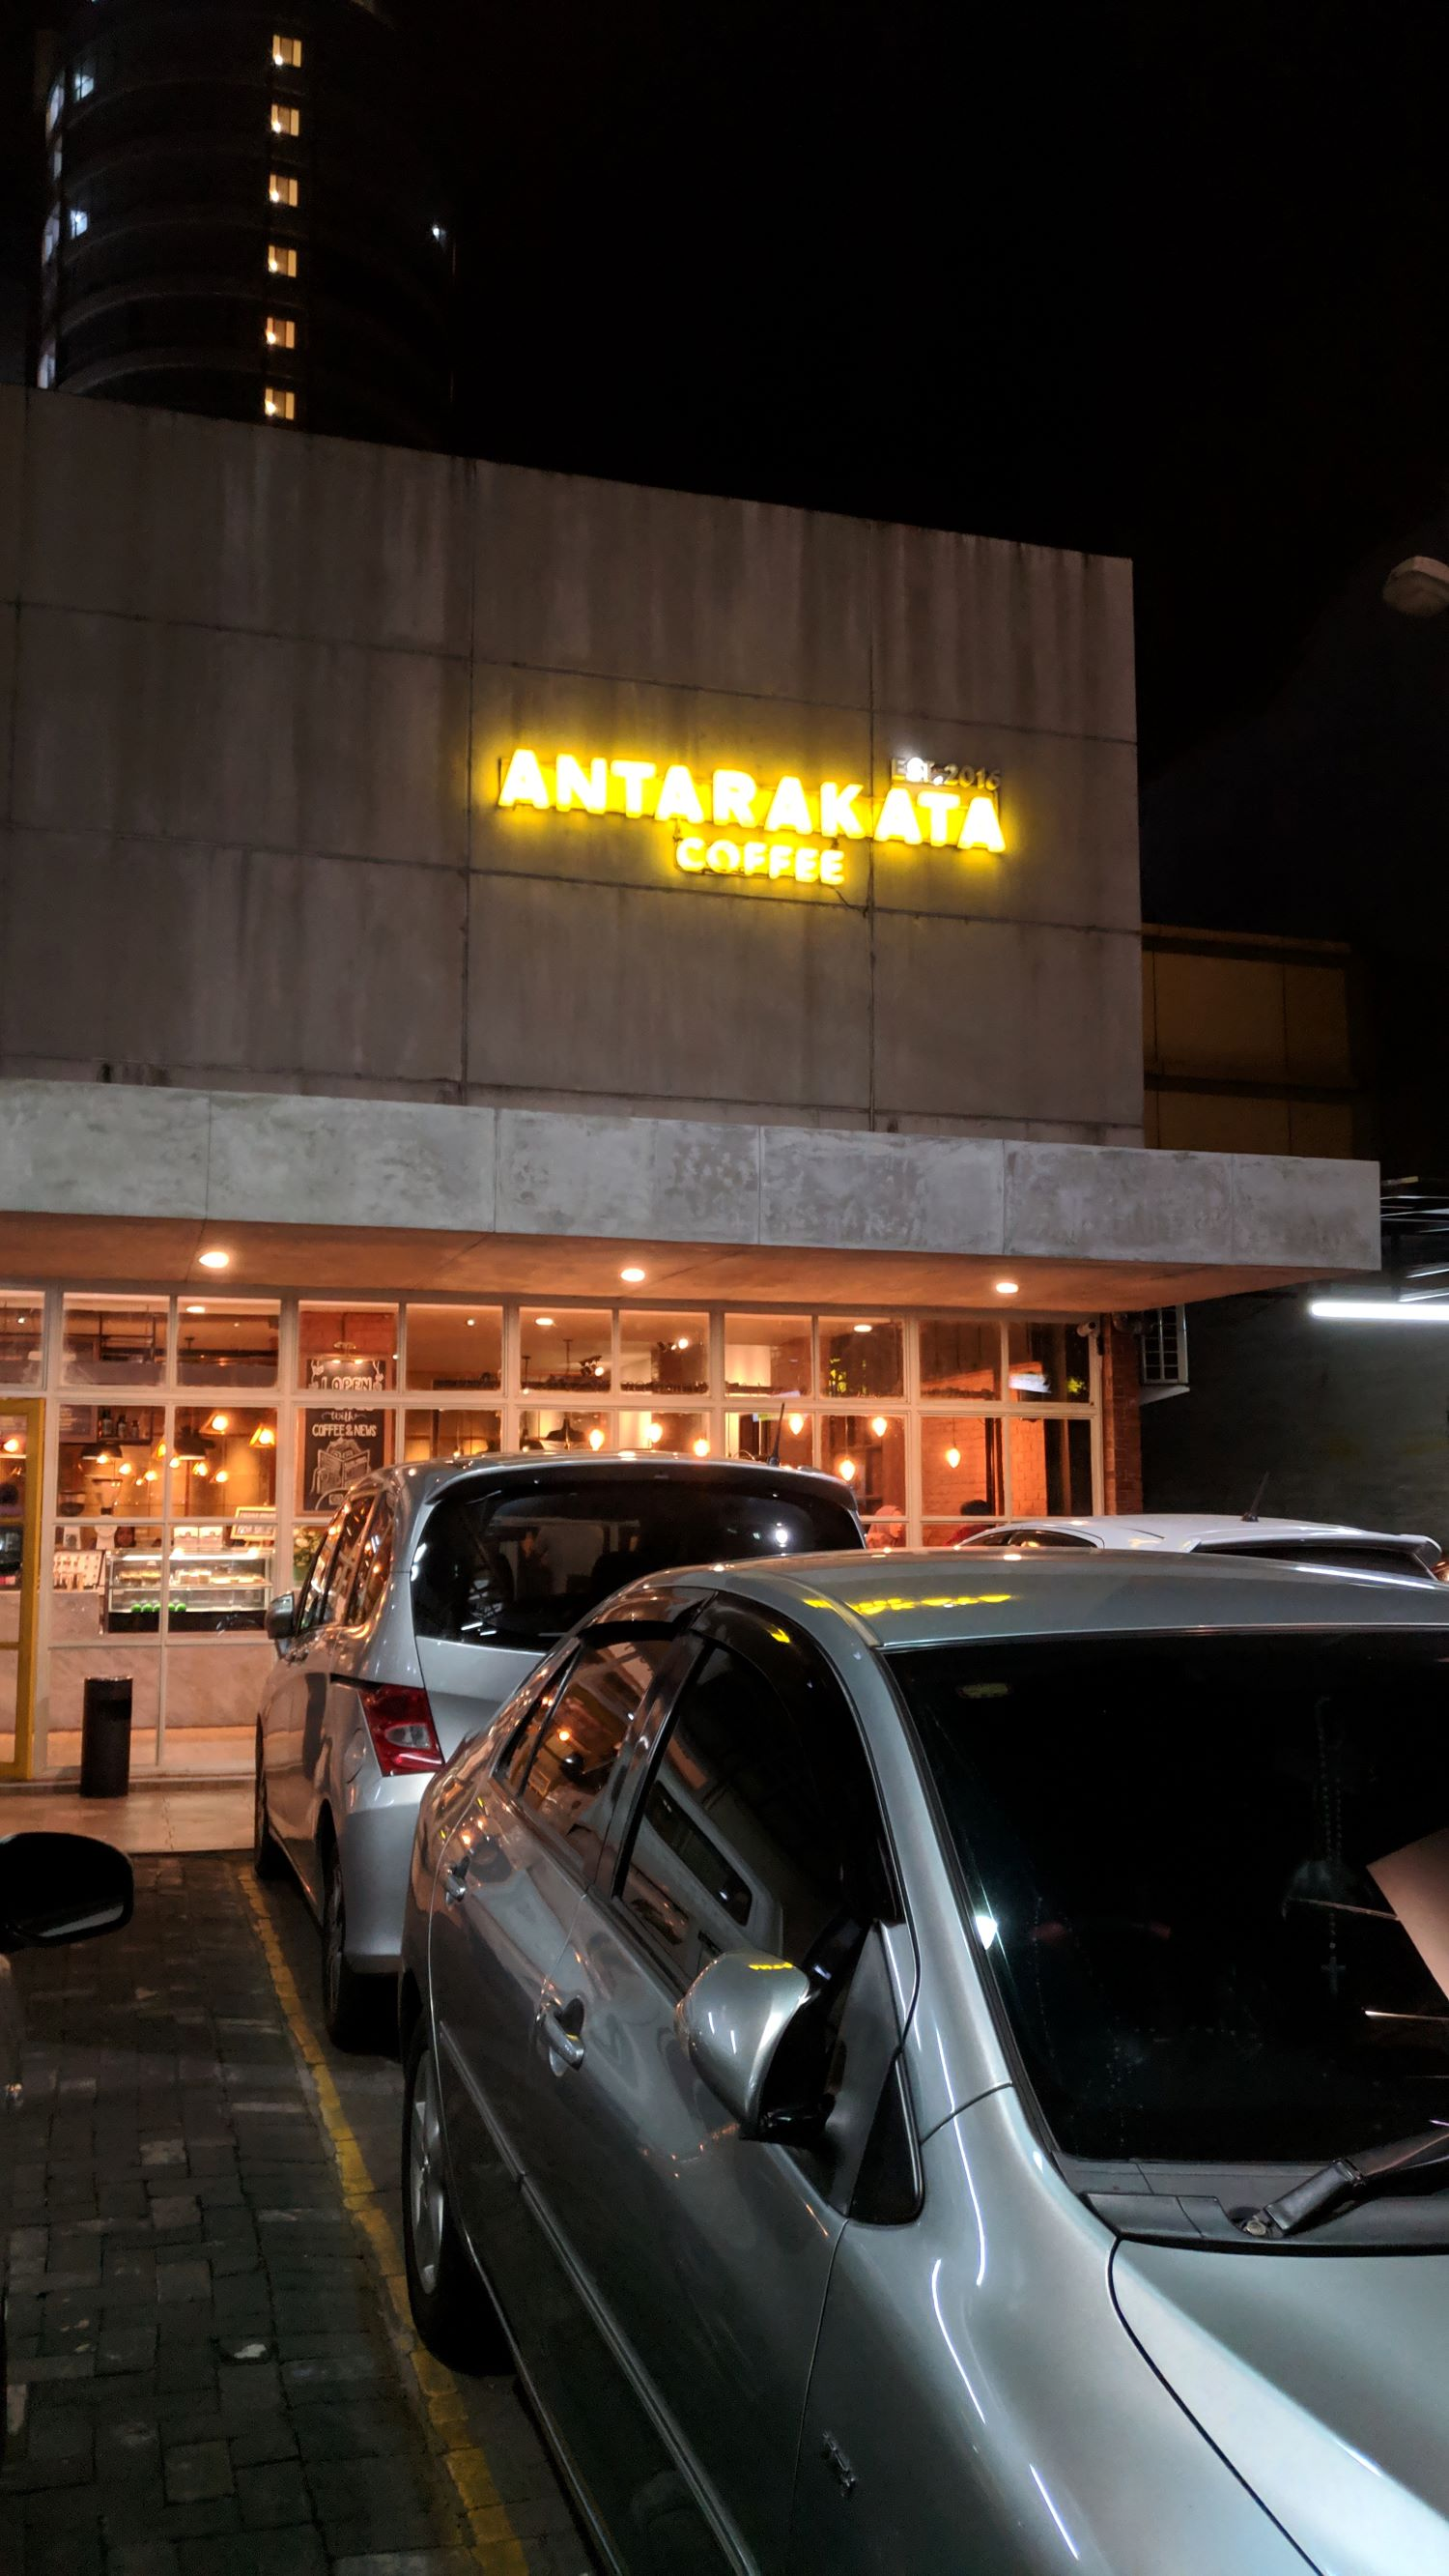 antakata coffee